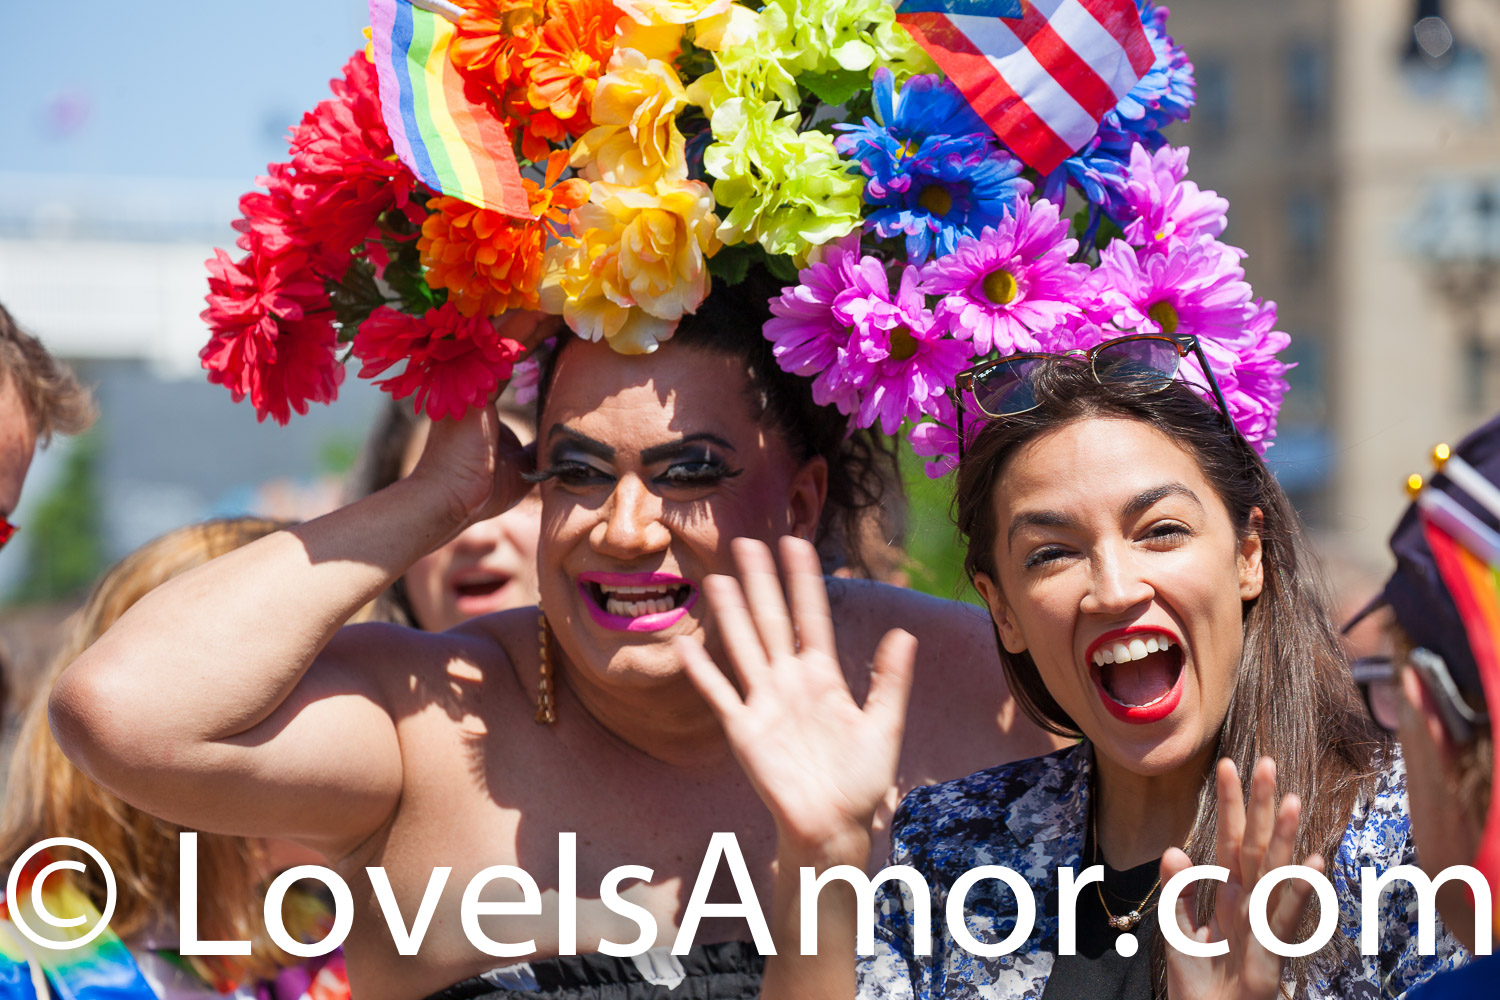 New York City – The 1 Bronx World Pride Rally, March and Festival was Yesterday, Sunday, June 23, 2019. People celebrated Bronx World Pride, Pride Month and the 50th anniversary of the Stonewall Rebellion. The rally was at 161st Street and Grand Concourse. Alexandria Ocasio-Cortez Congresswoman for New York's 14th congressional district: Bronx – Queens, was one of the speakers. AOC (often referred to by her initials) marched from 161st Street and Grand Concourse to 149th Street and 3rd Ave.